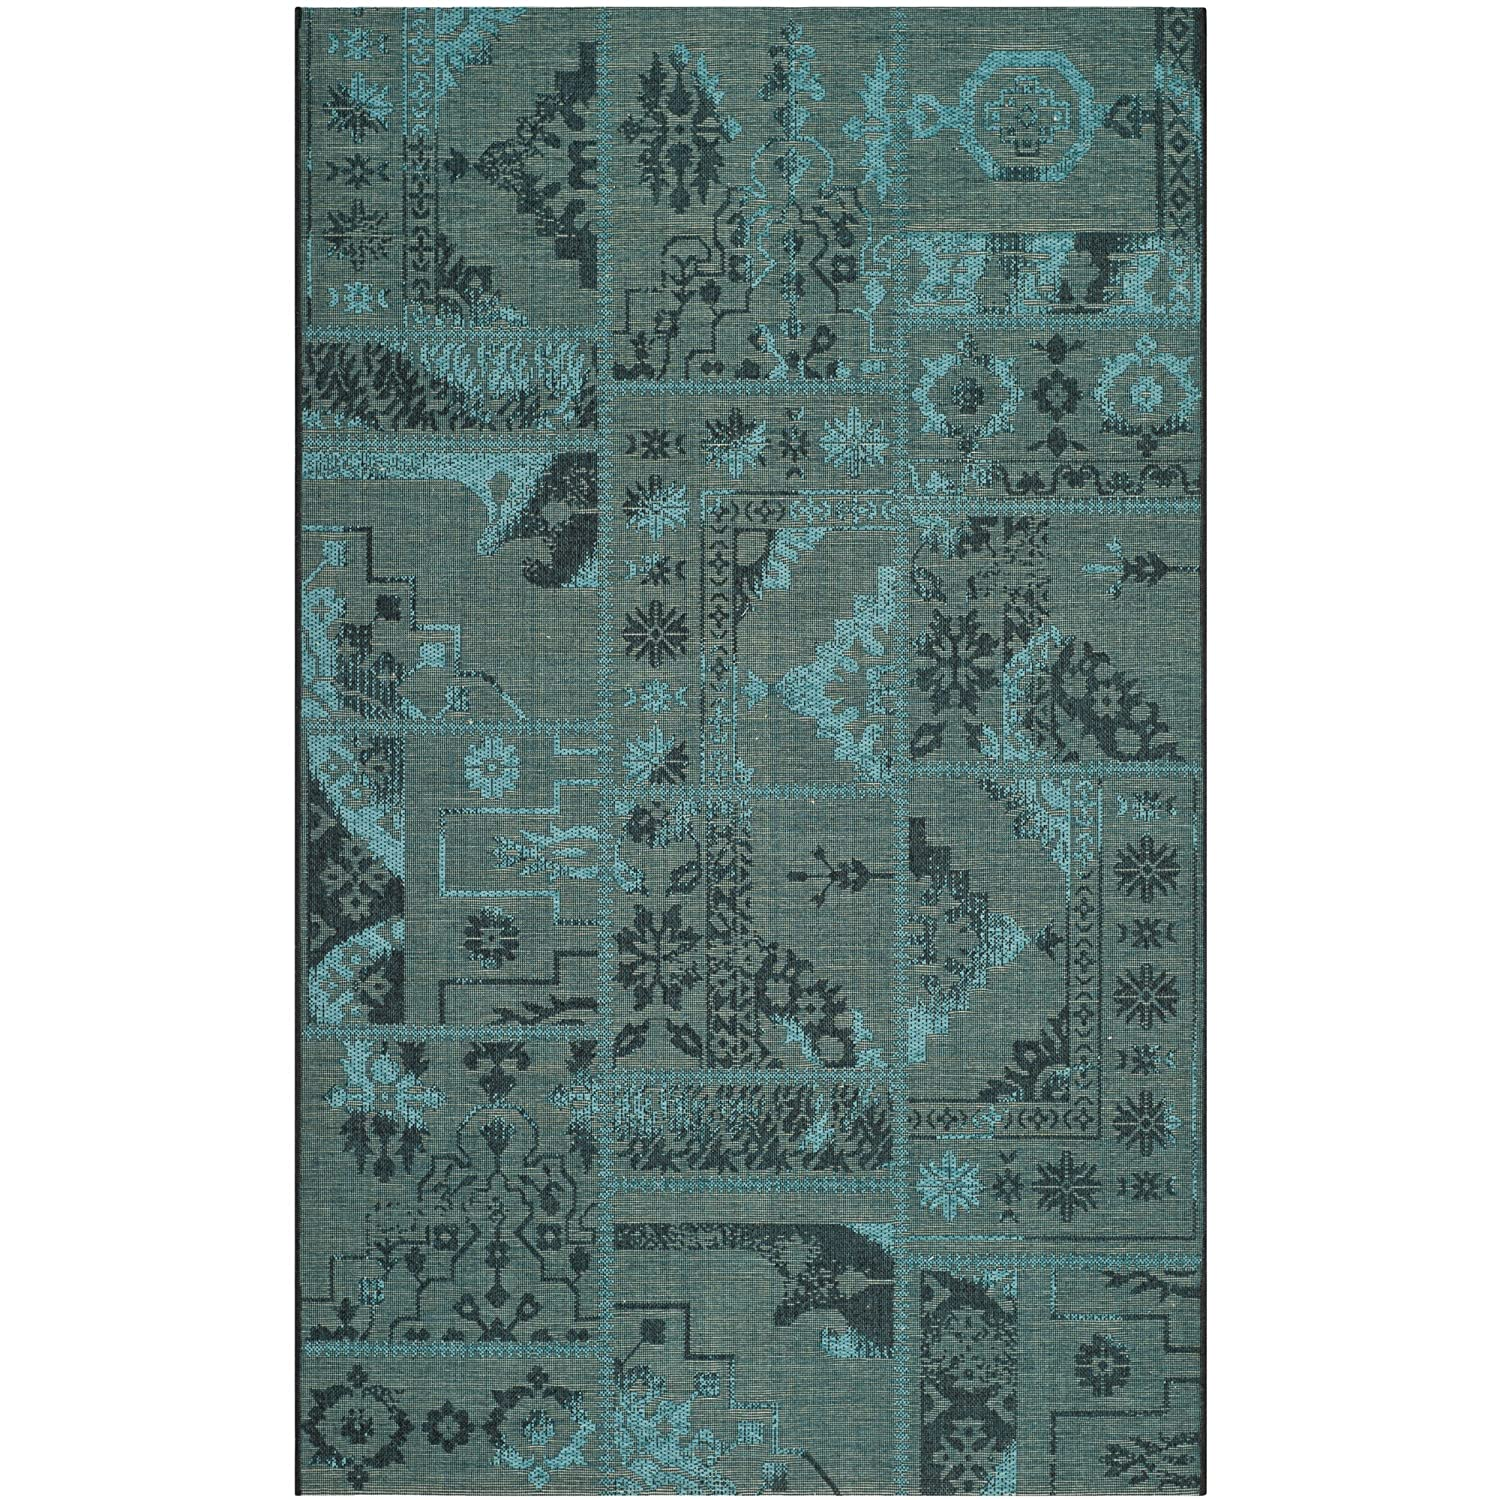 Safavieh Palazzo Collection PAL121-56C10 Black and Green Area Rug, 2 feet by 3 feet 6 inches (2' x 3'6) PAL121-56C10-2